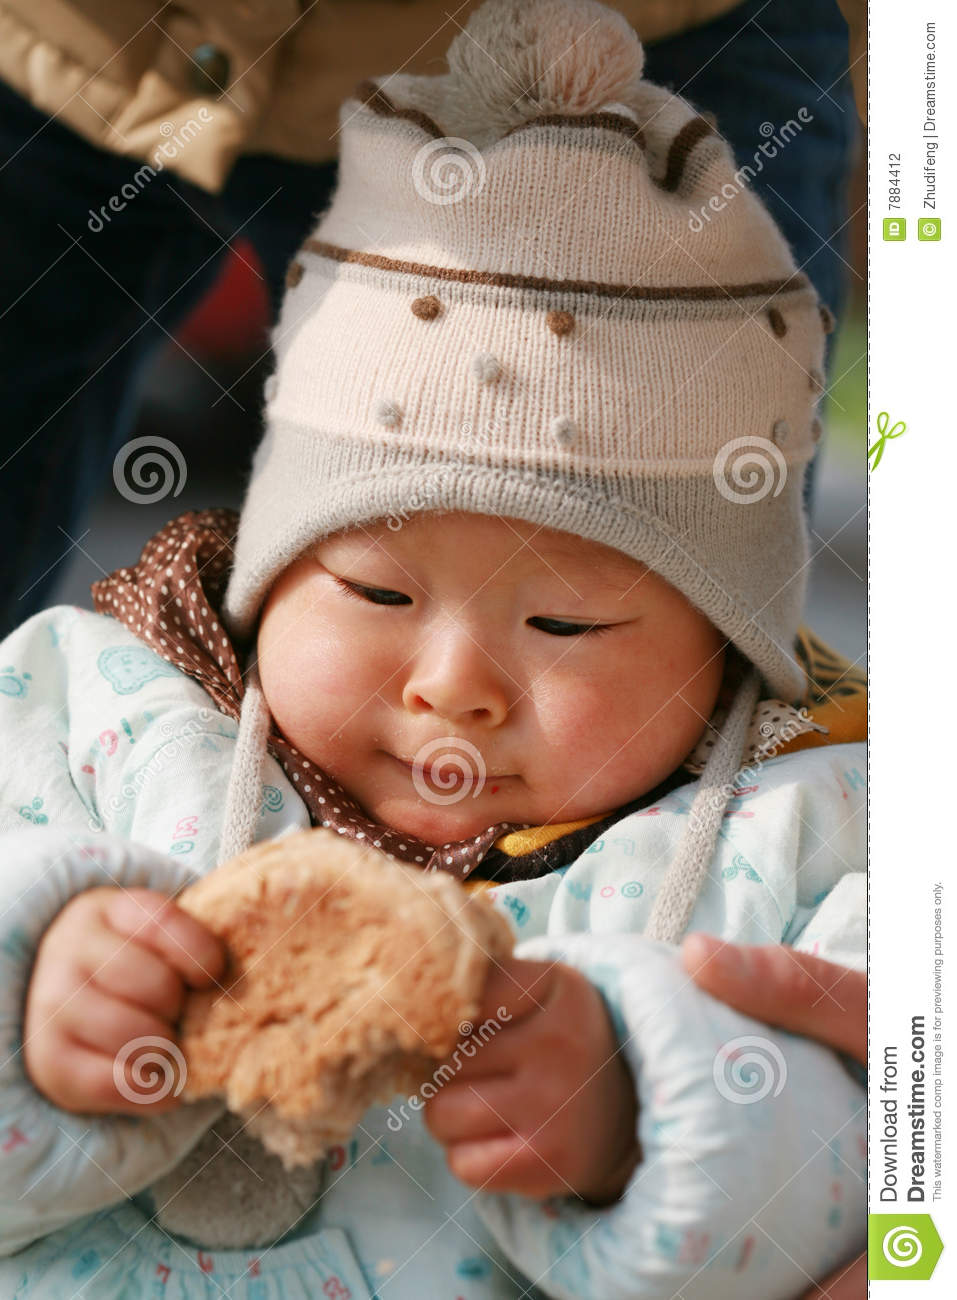 Chinese Baby Eating Bread Stock Photography - Image: 7884412